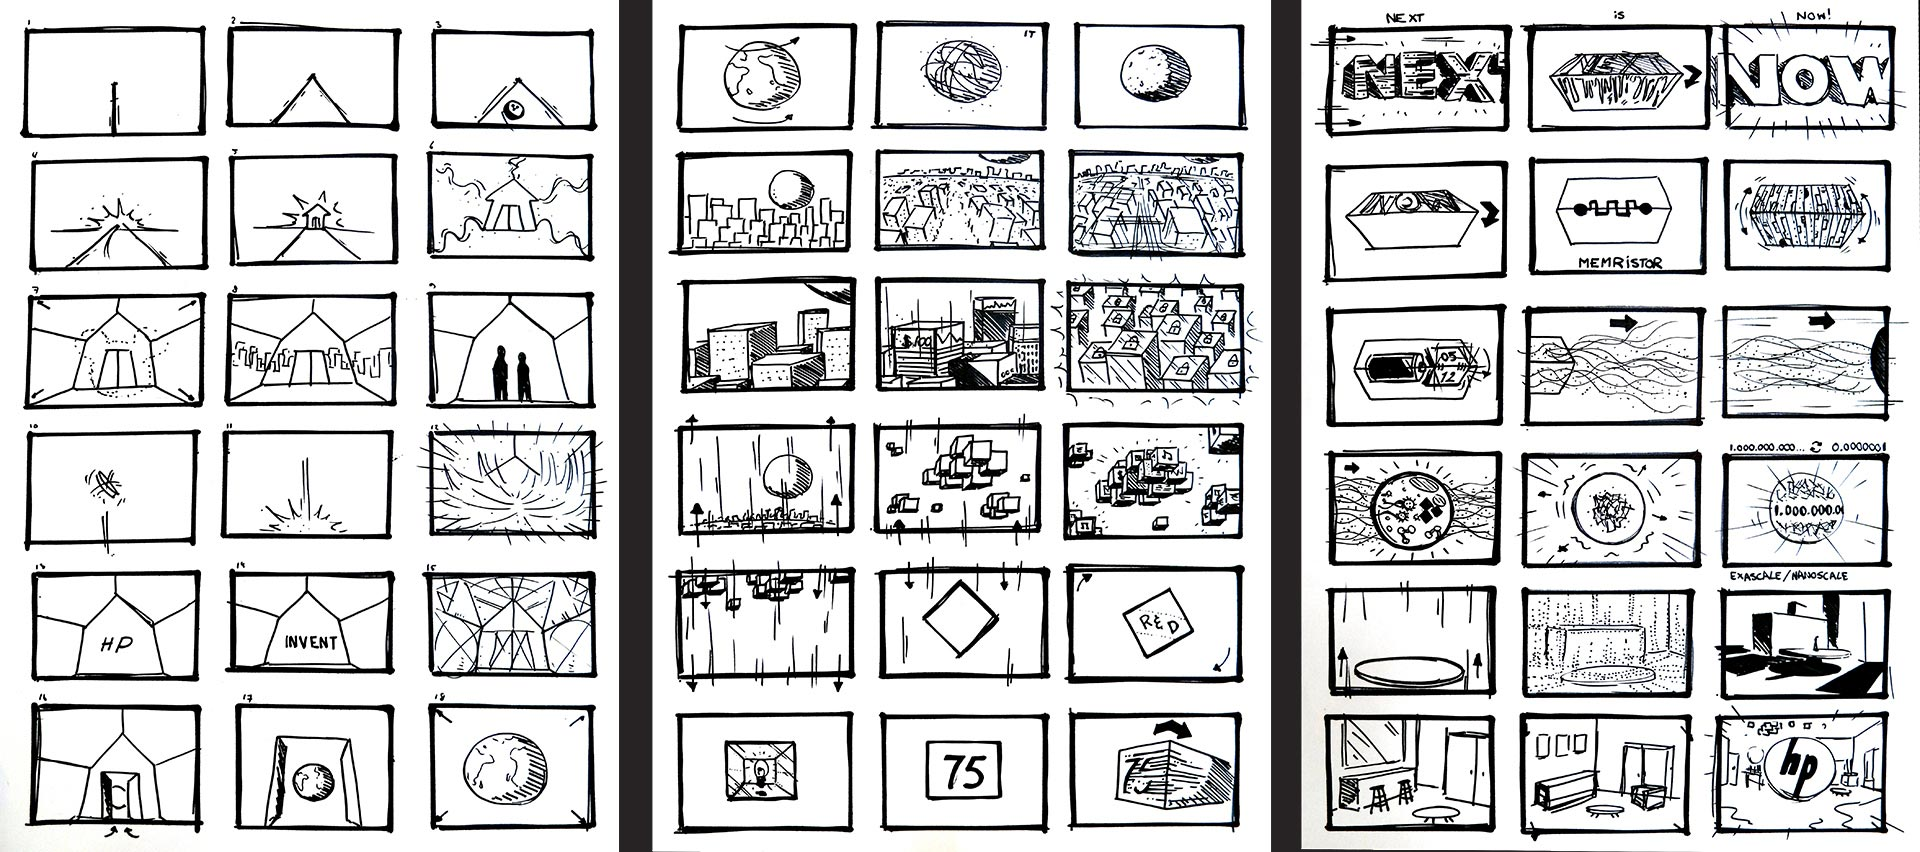 Digital storyboard for HP created by Mr.Beam